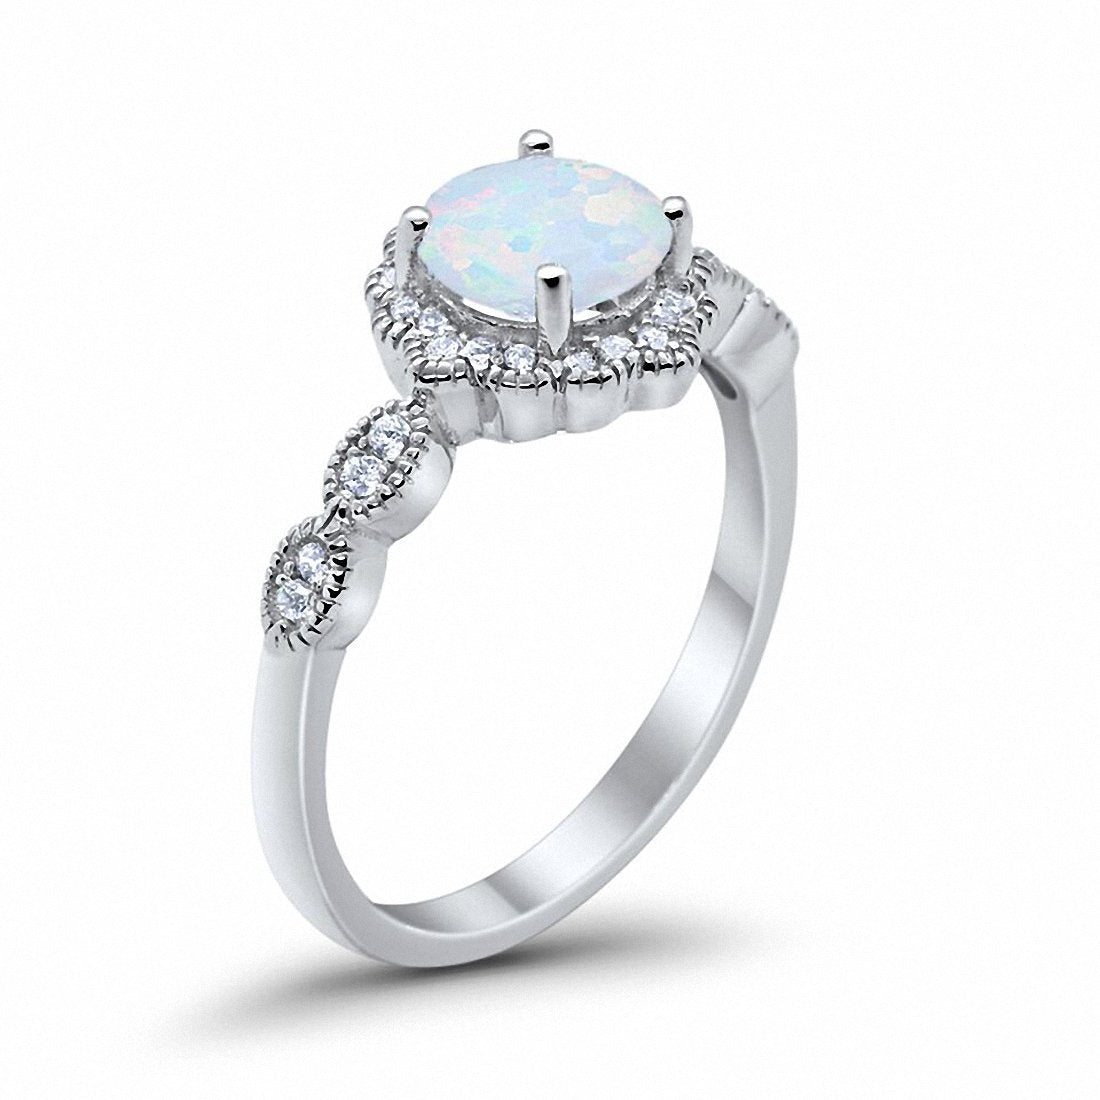 Floral Art Wedding Engagement Ring Lab Created White Opal 925 Sterling Silver